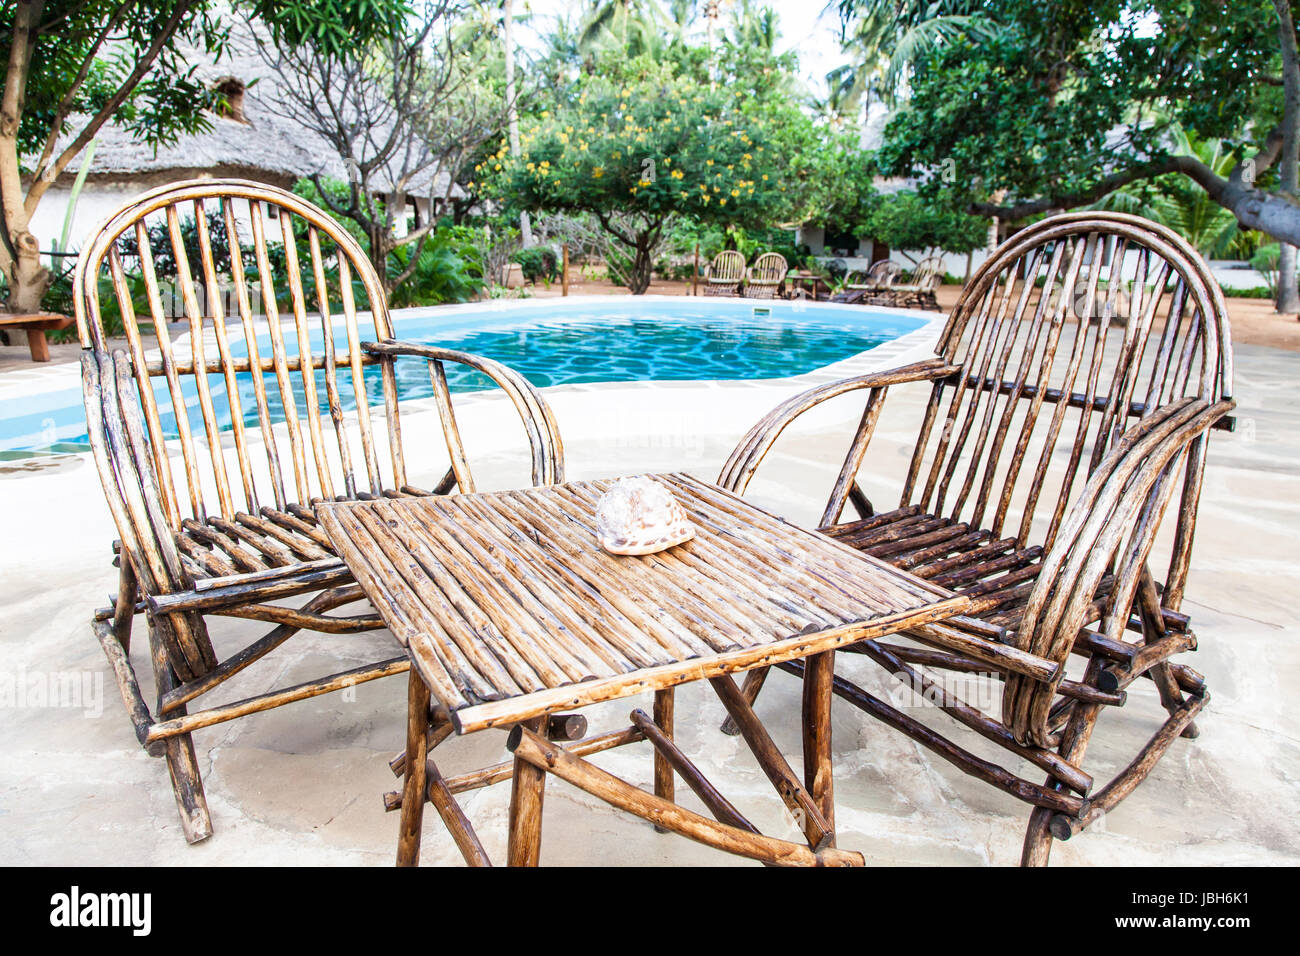 what are pool chairs made out of orthopedic high seat chair for the elderly elegant wood close to a swimming inside kenyan garden